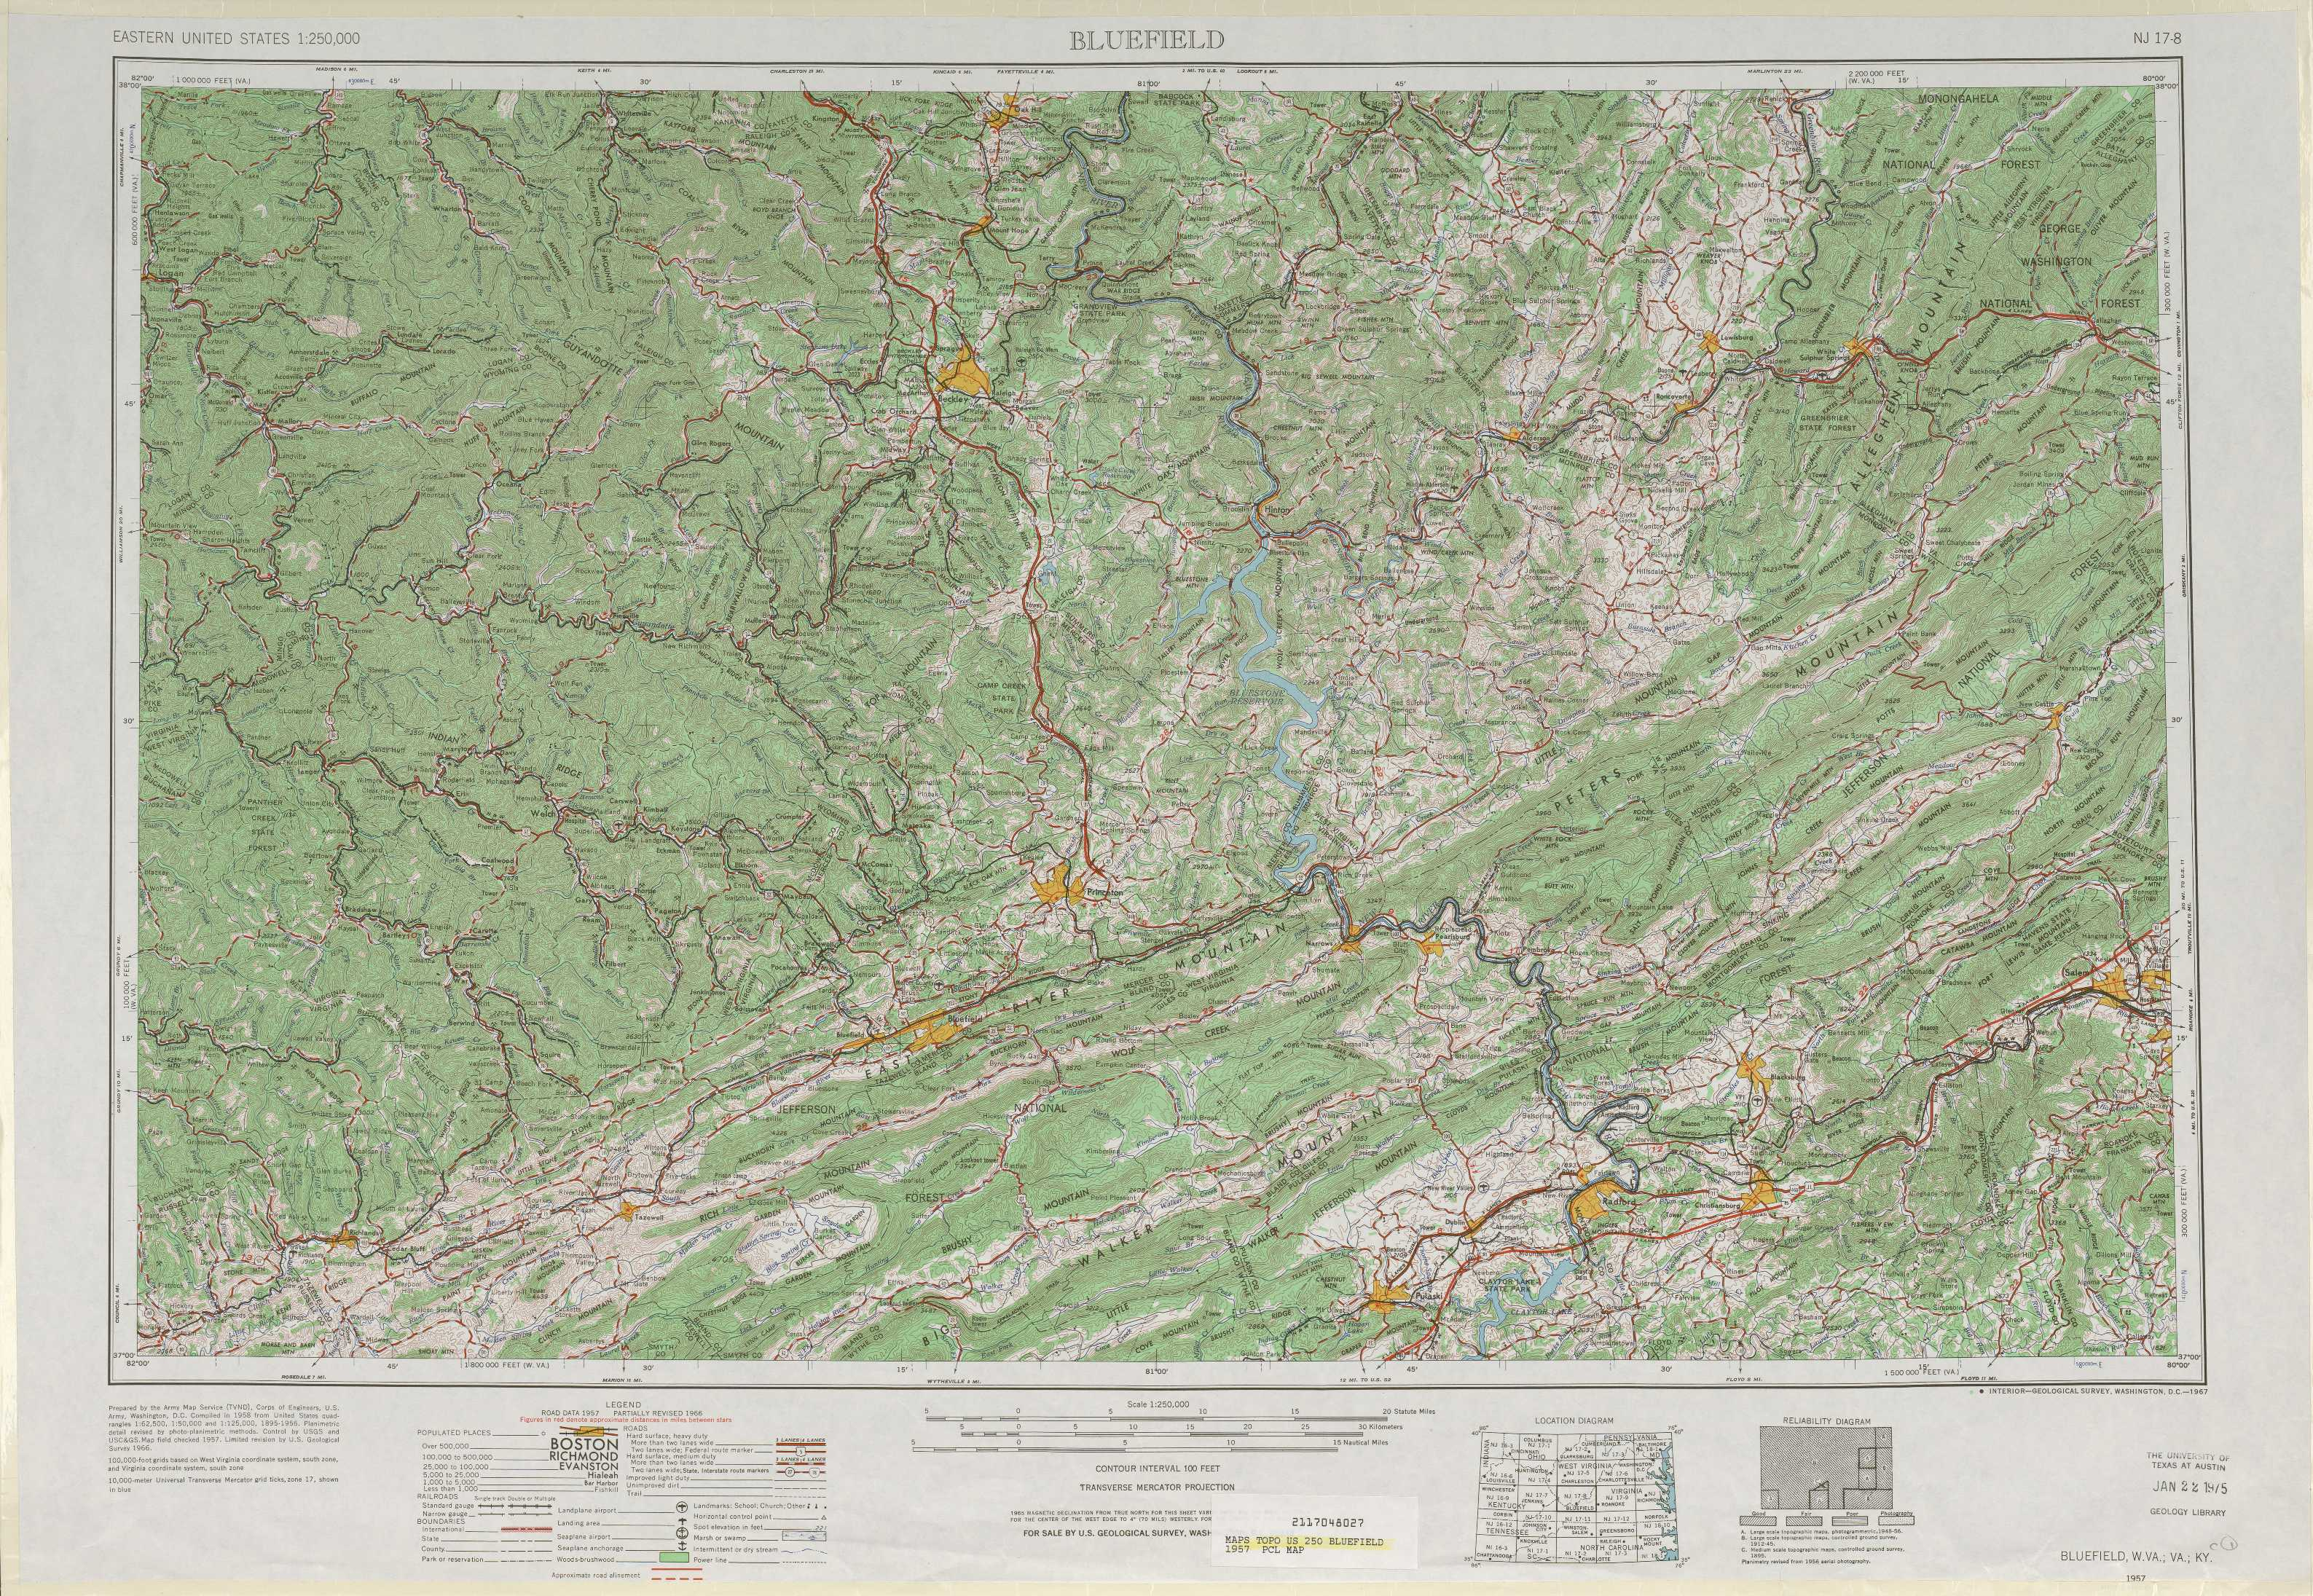 Bluefield topographic maps, WV, VA, KY - USGS Topo Quad ...